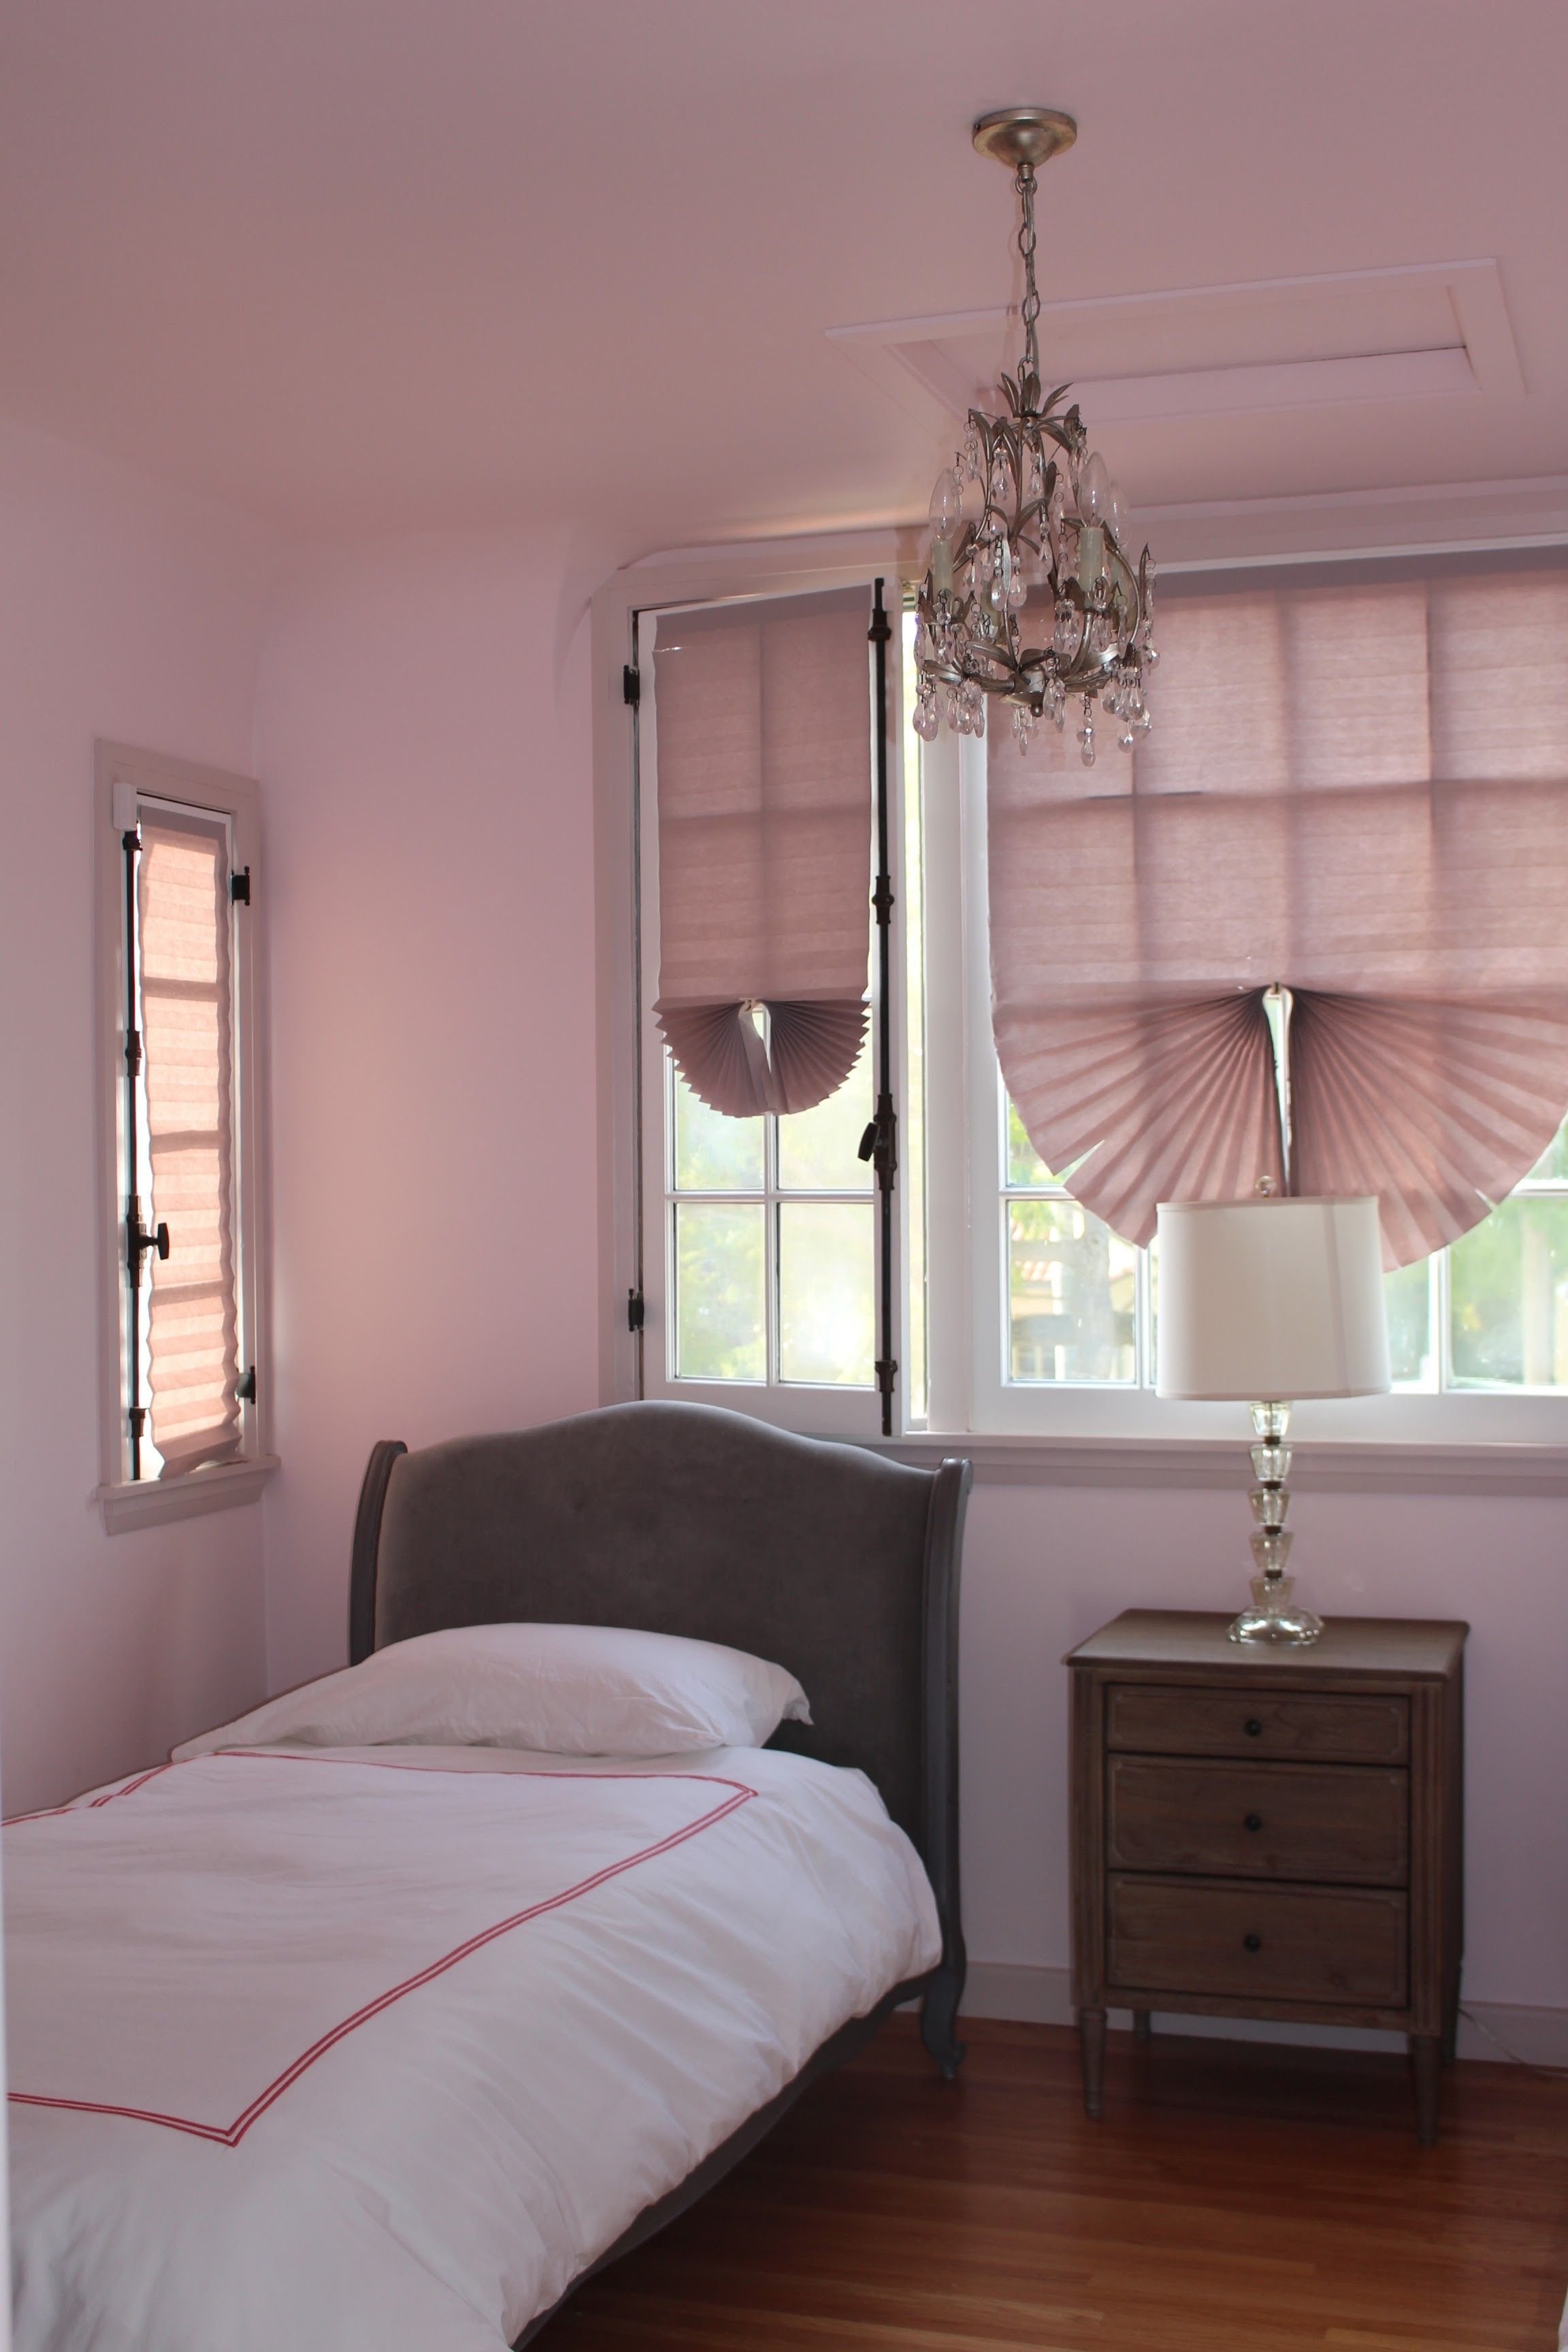 Girls Room Walls In Middleton Pink By Farrow Amp Ball Los